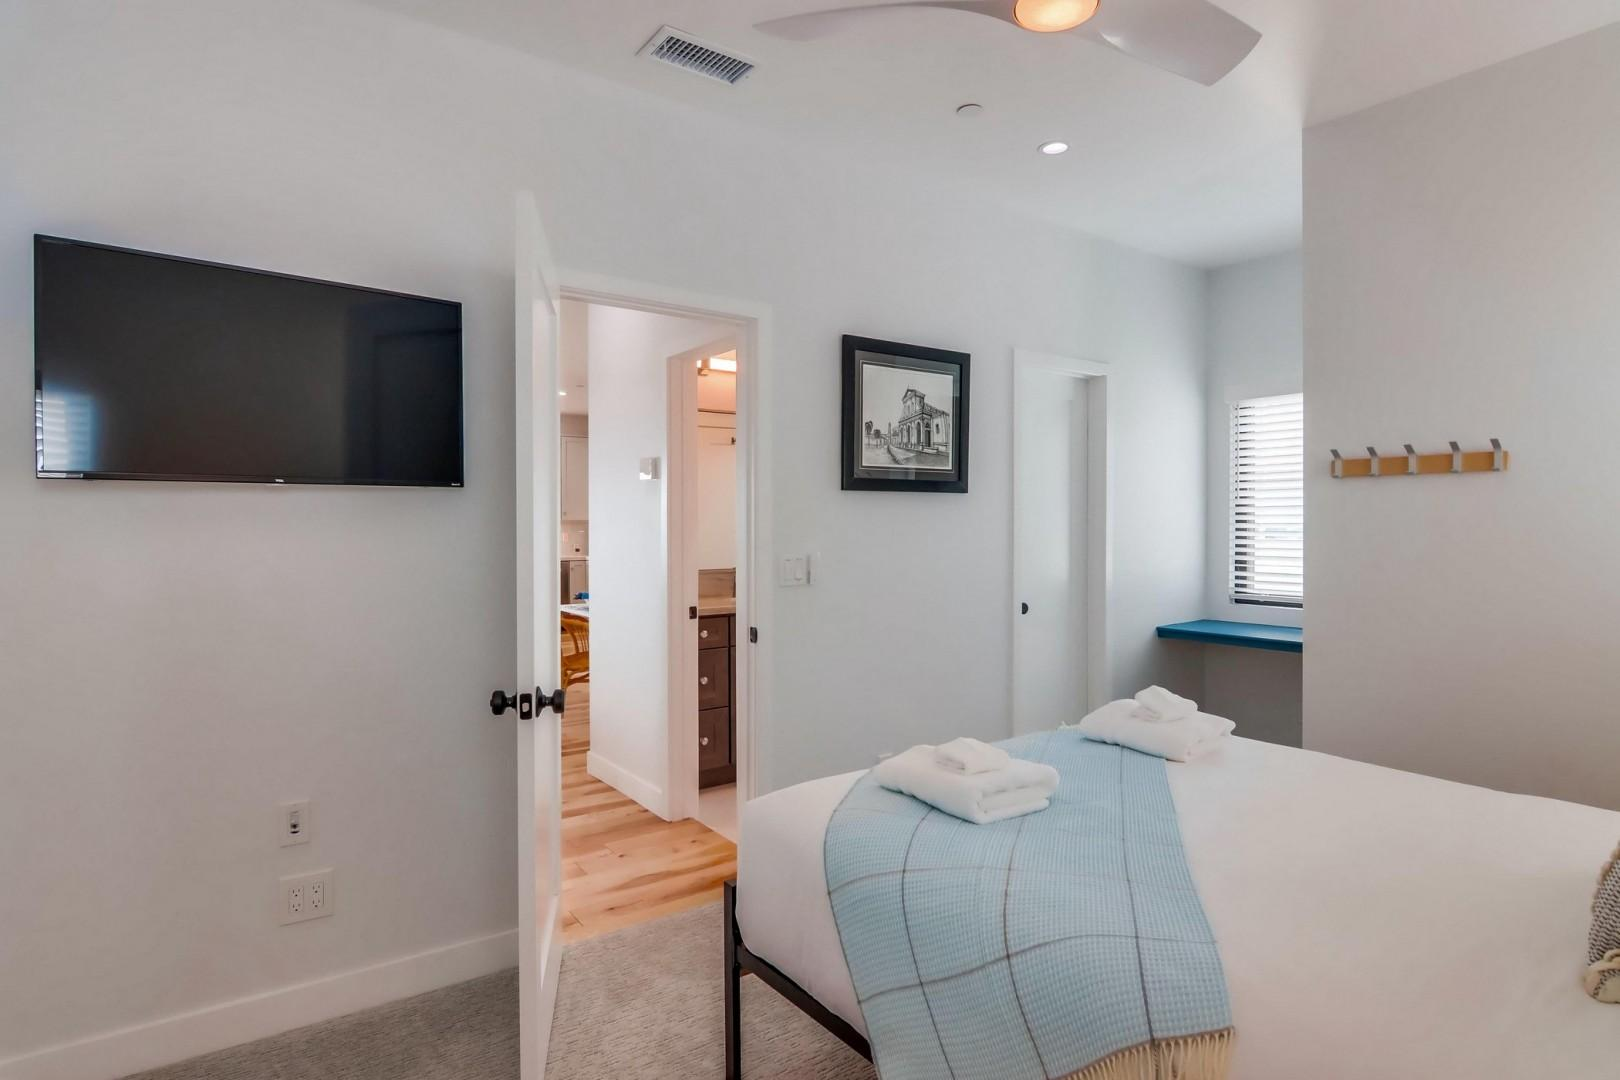 Bedroom Suite with TV and bathroom